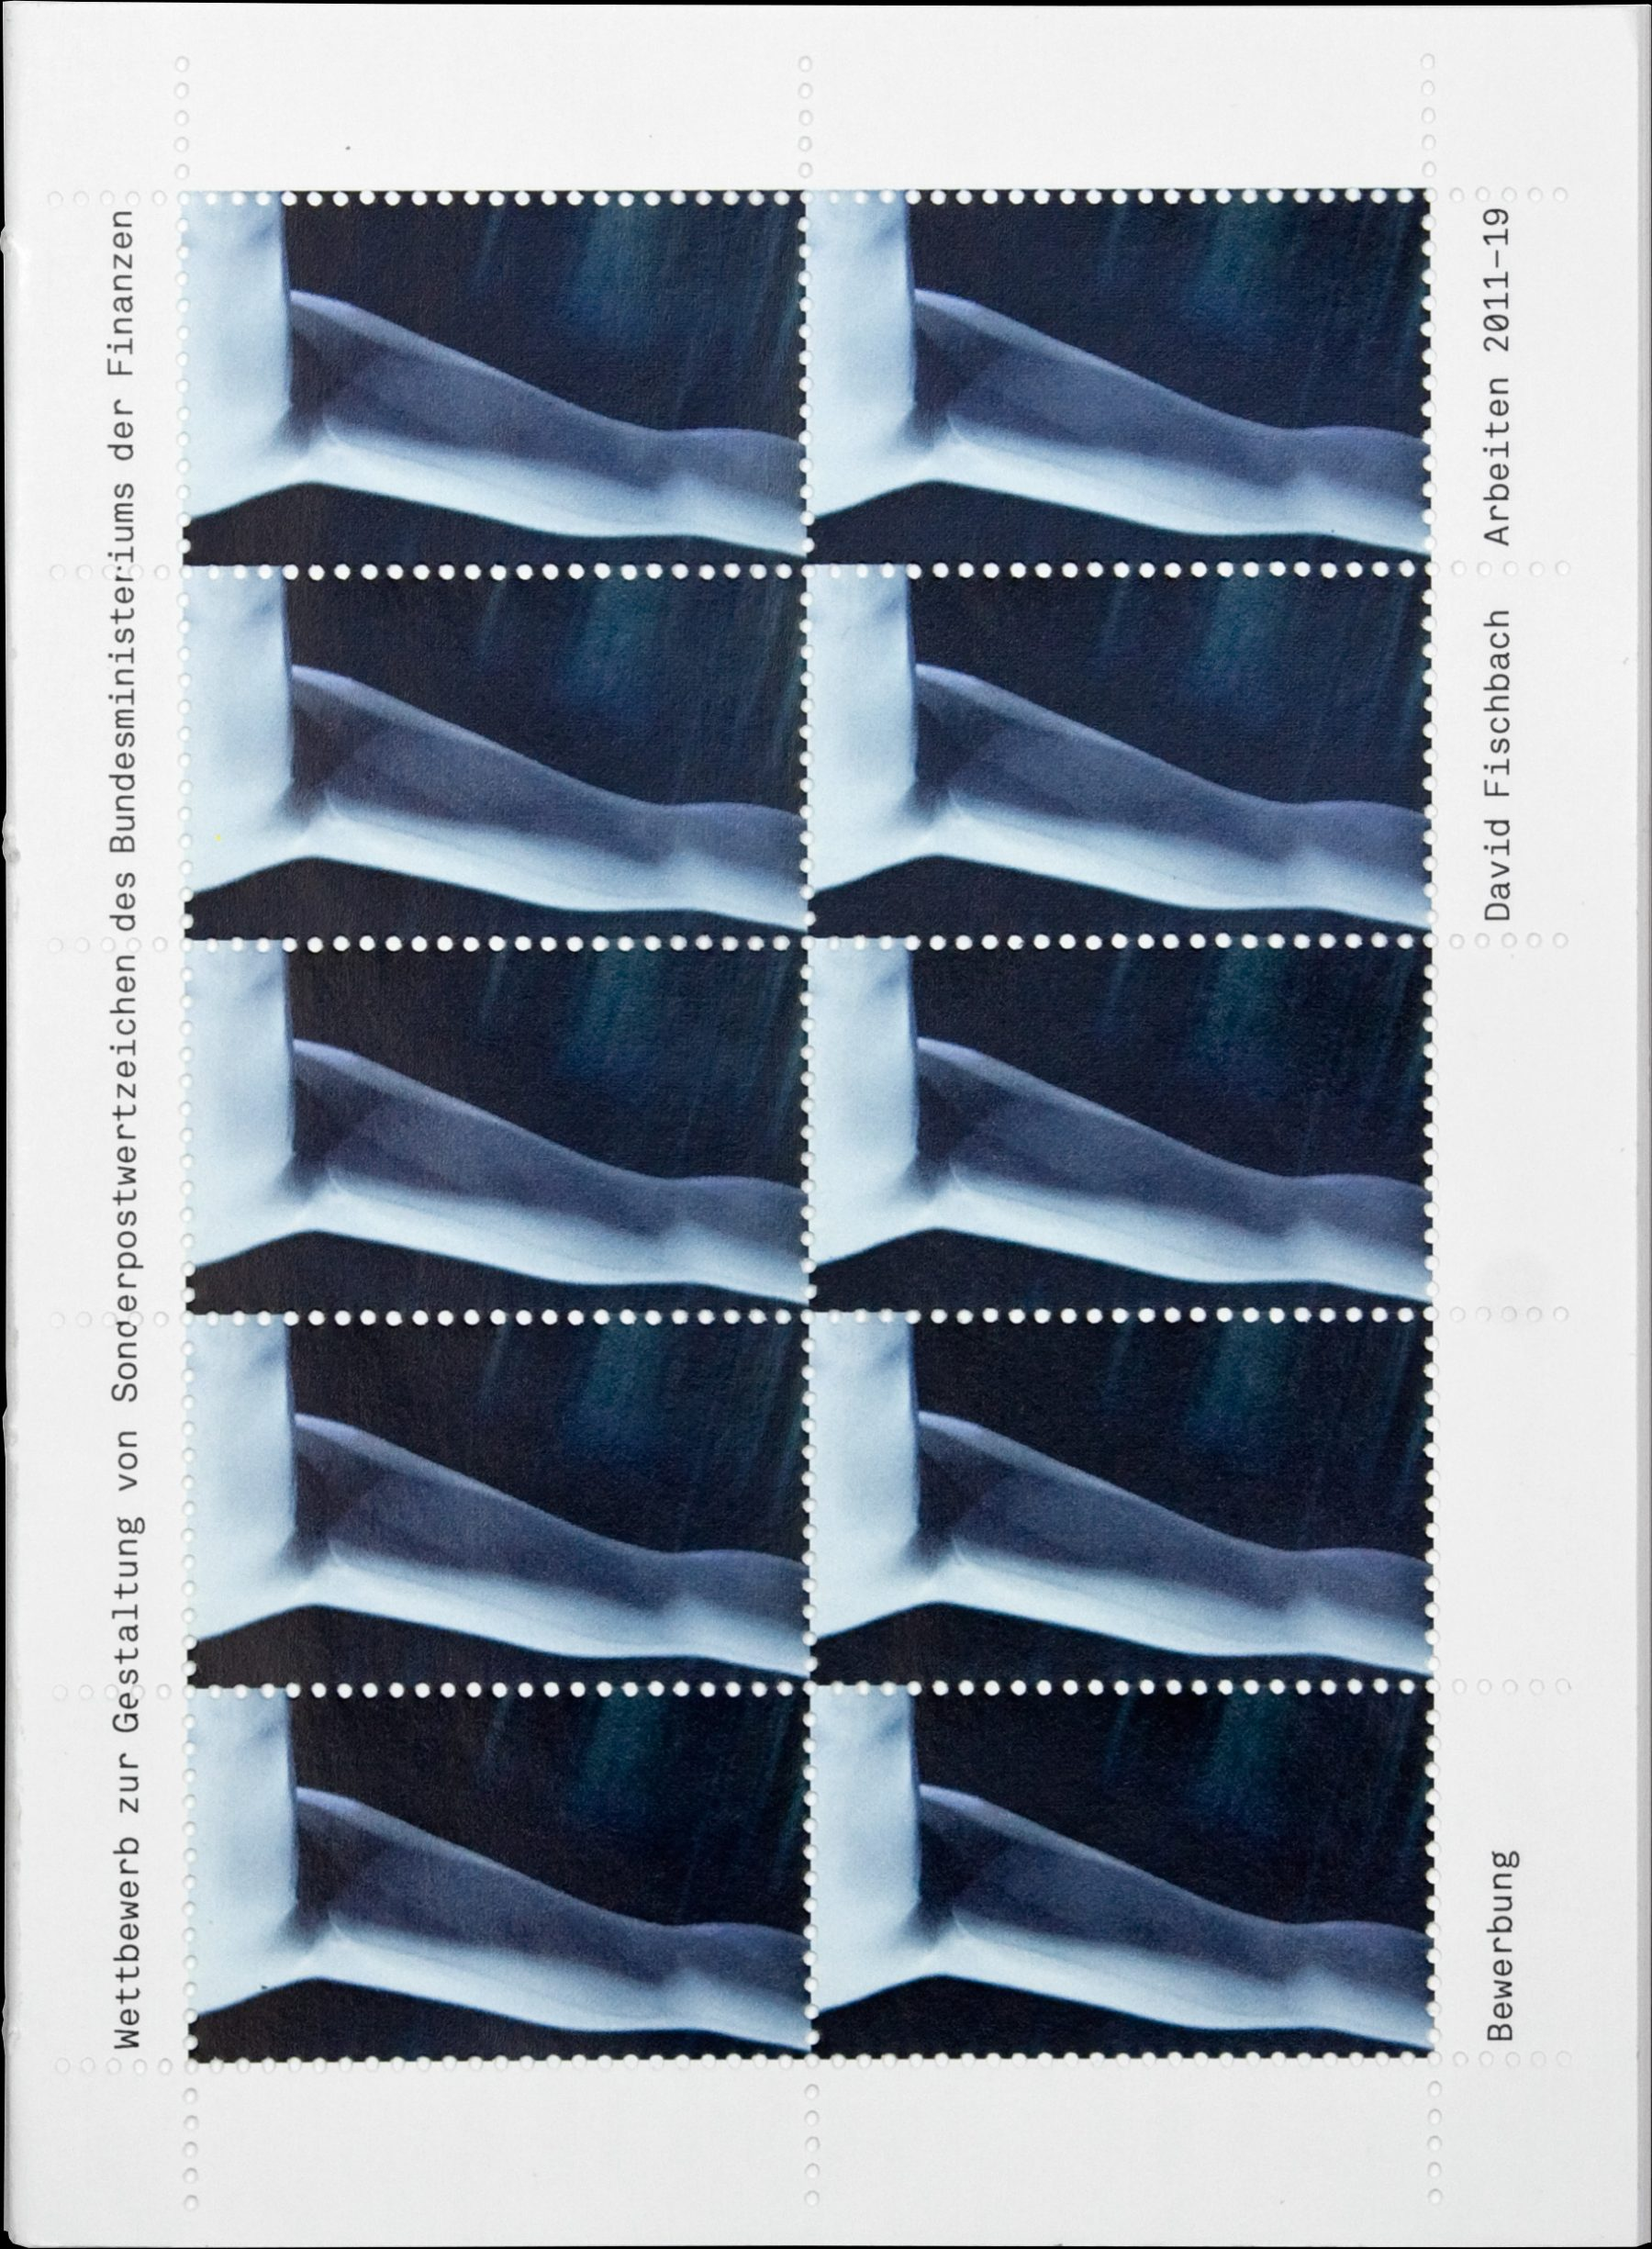 Application for the competition for the design of special postage stamps of the Federal Ministry of Finance, Cover, David Fischbach